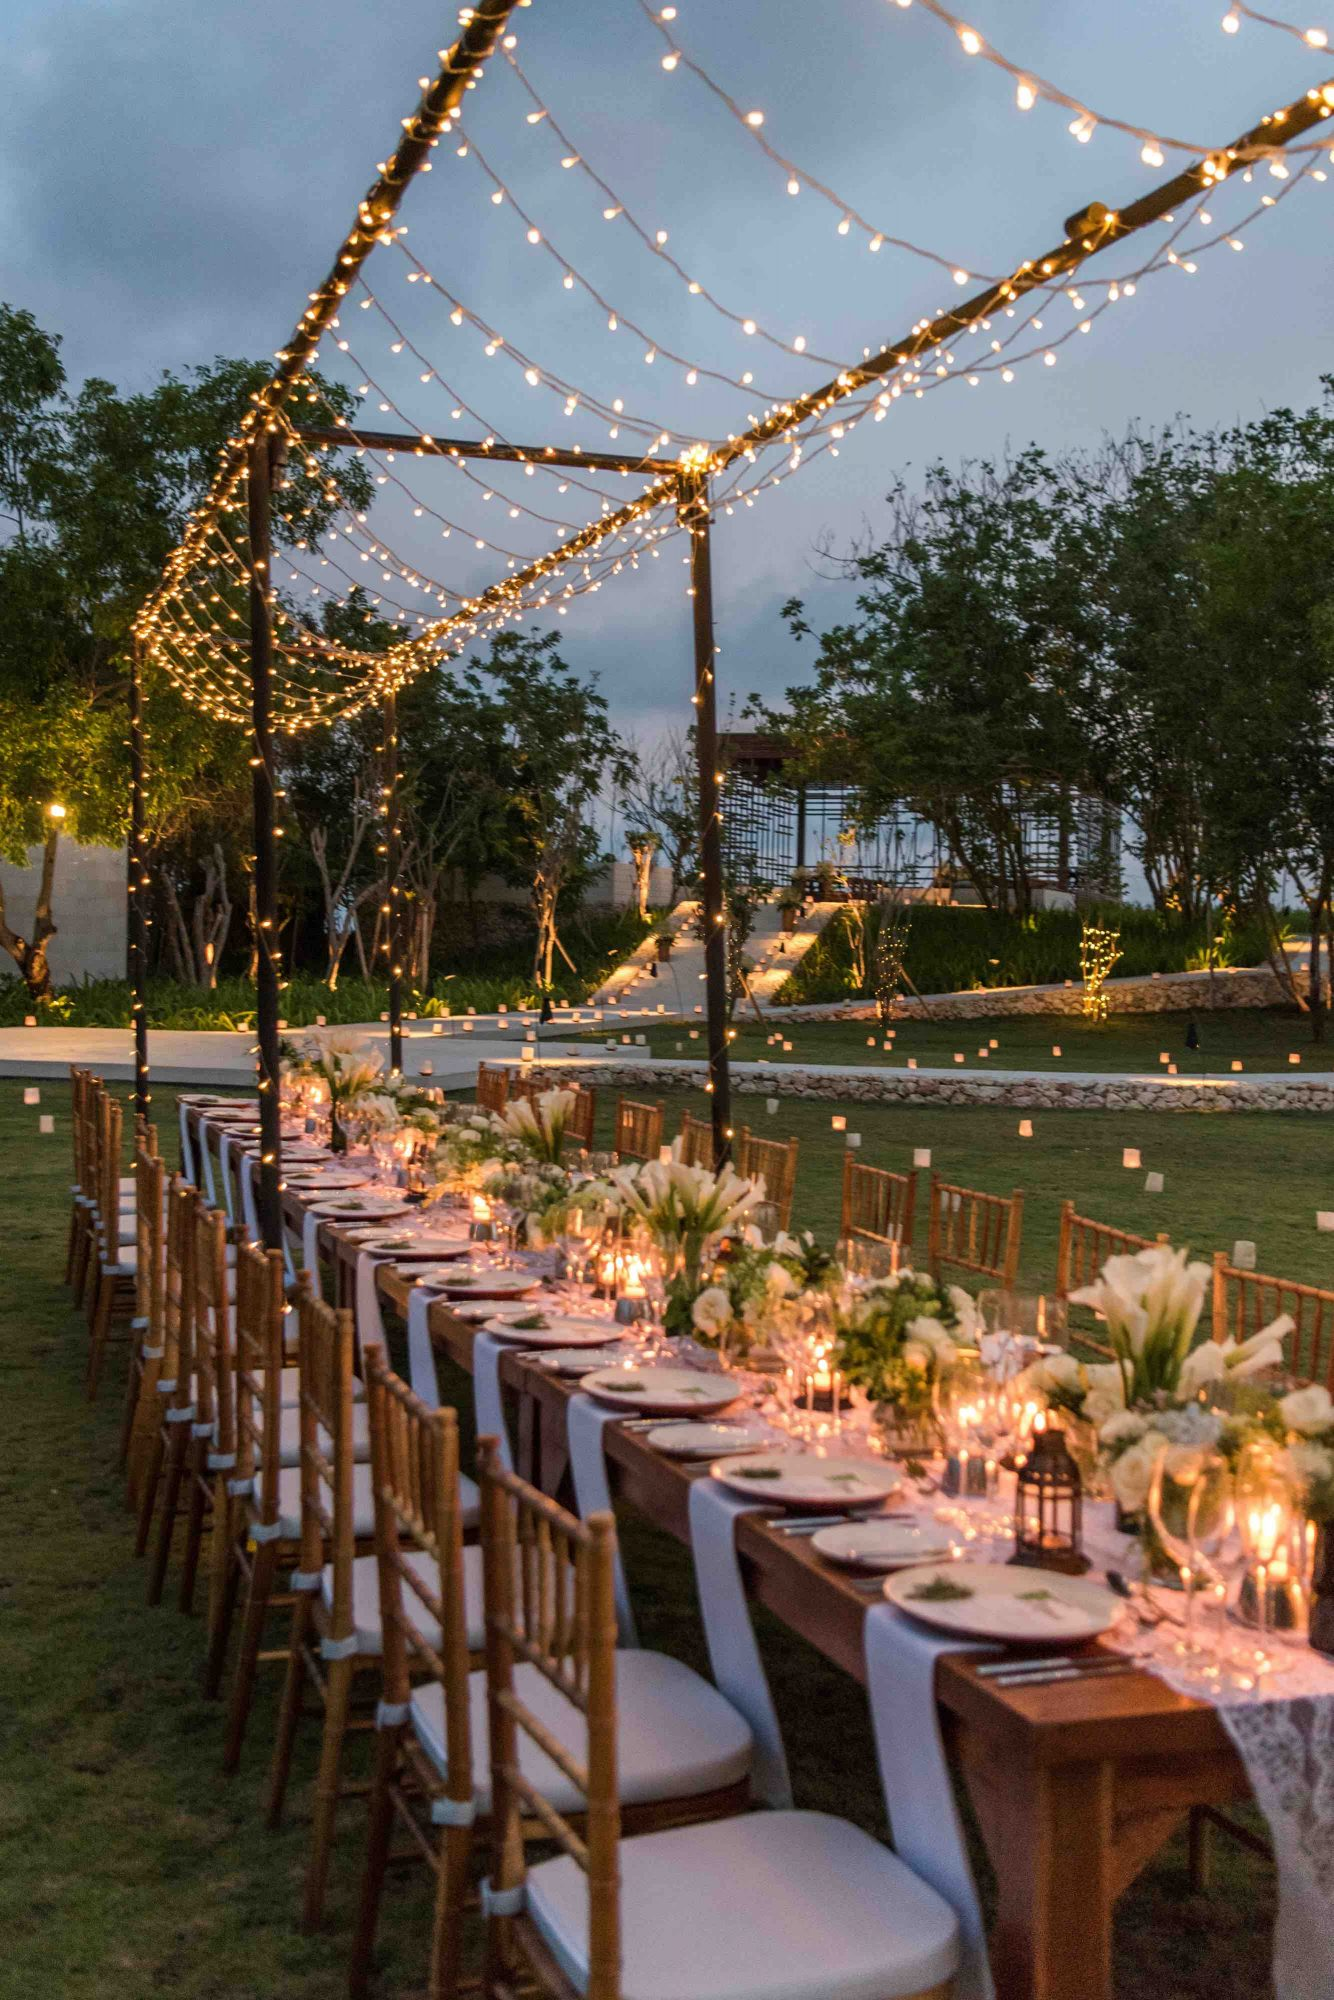 Garden Wedding Venue in Alila Villas Uluwatu